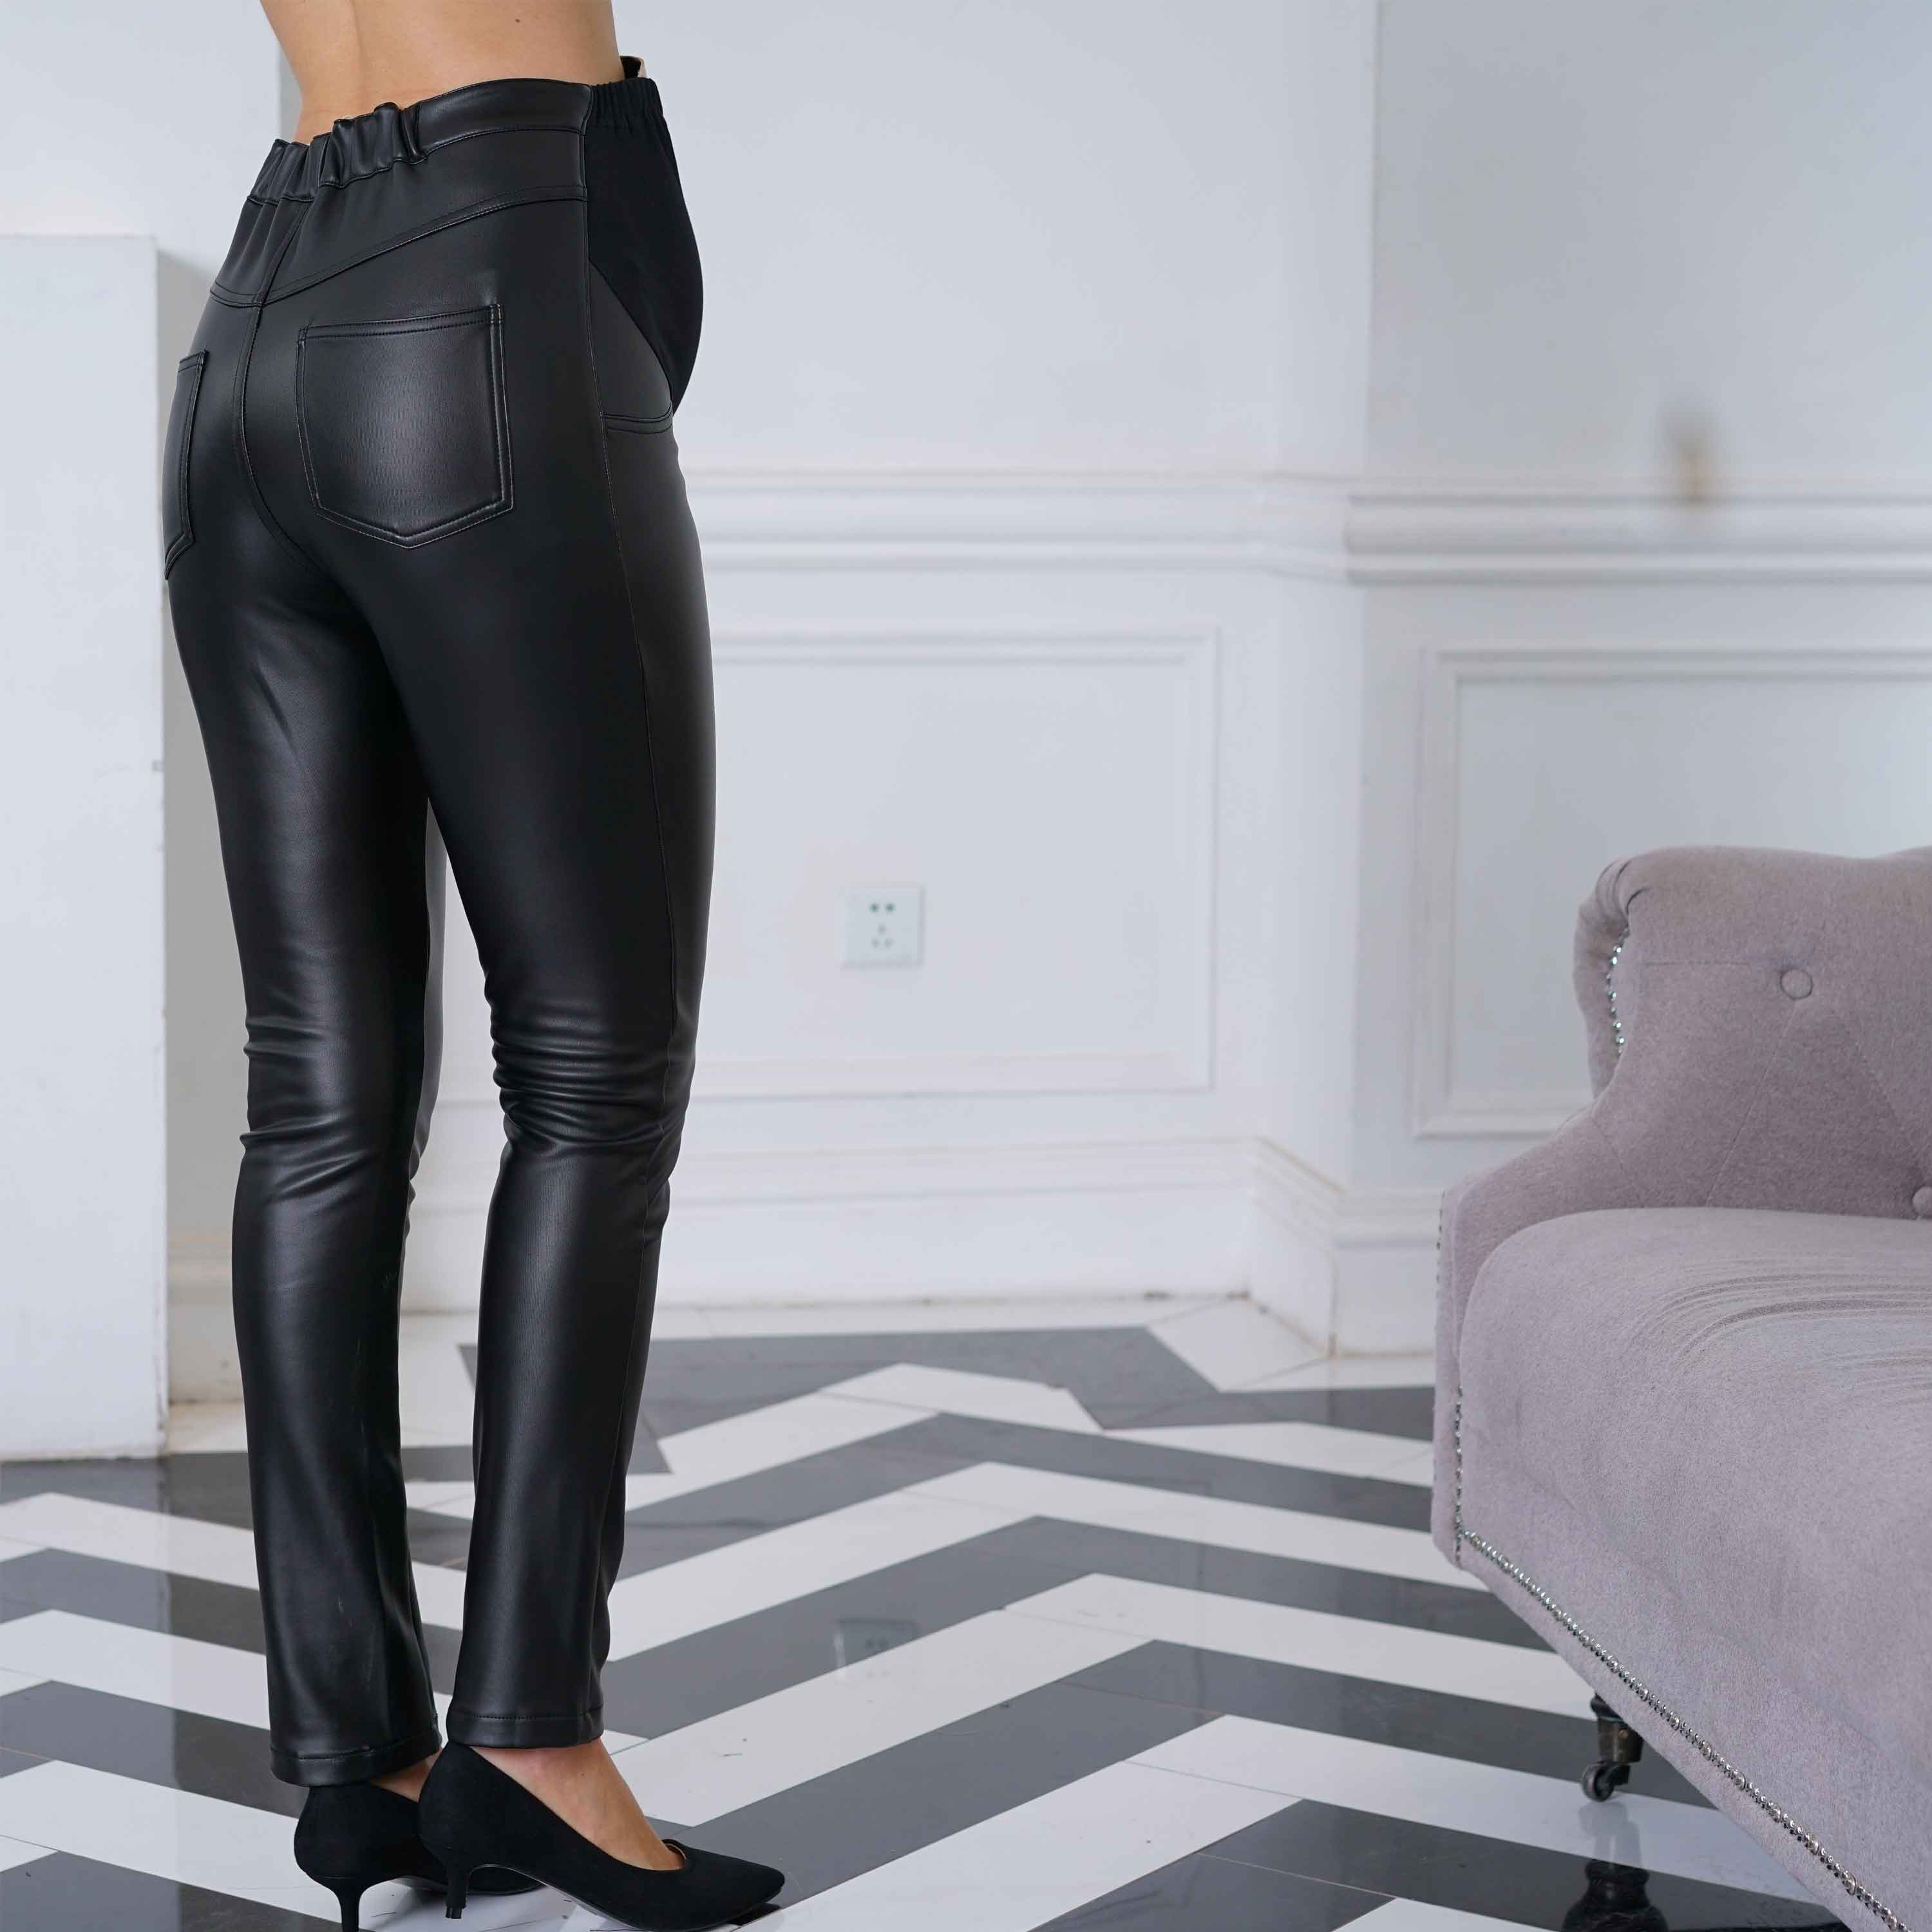 Maternity and Post-Partum Warm Fake Leather Pants Leggings